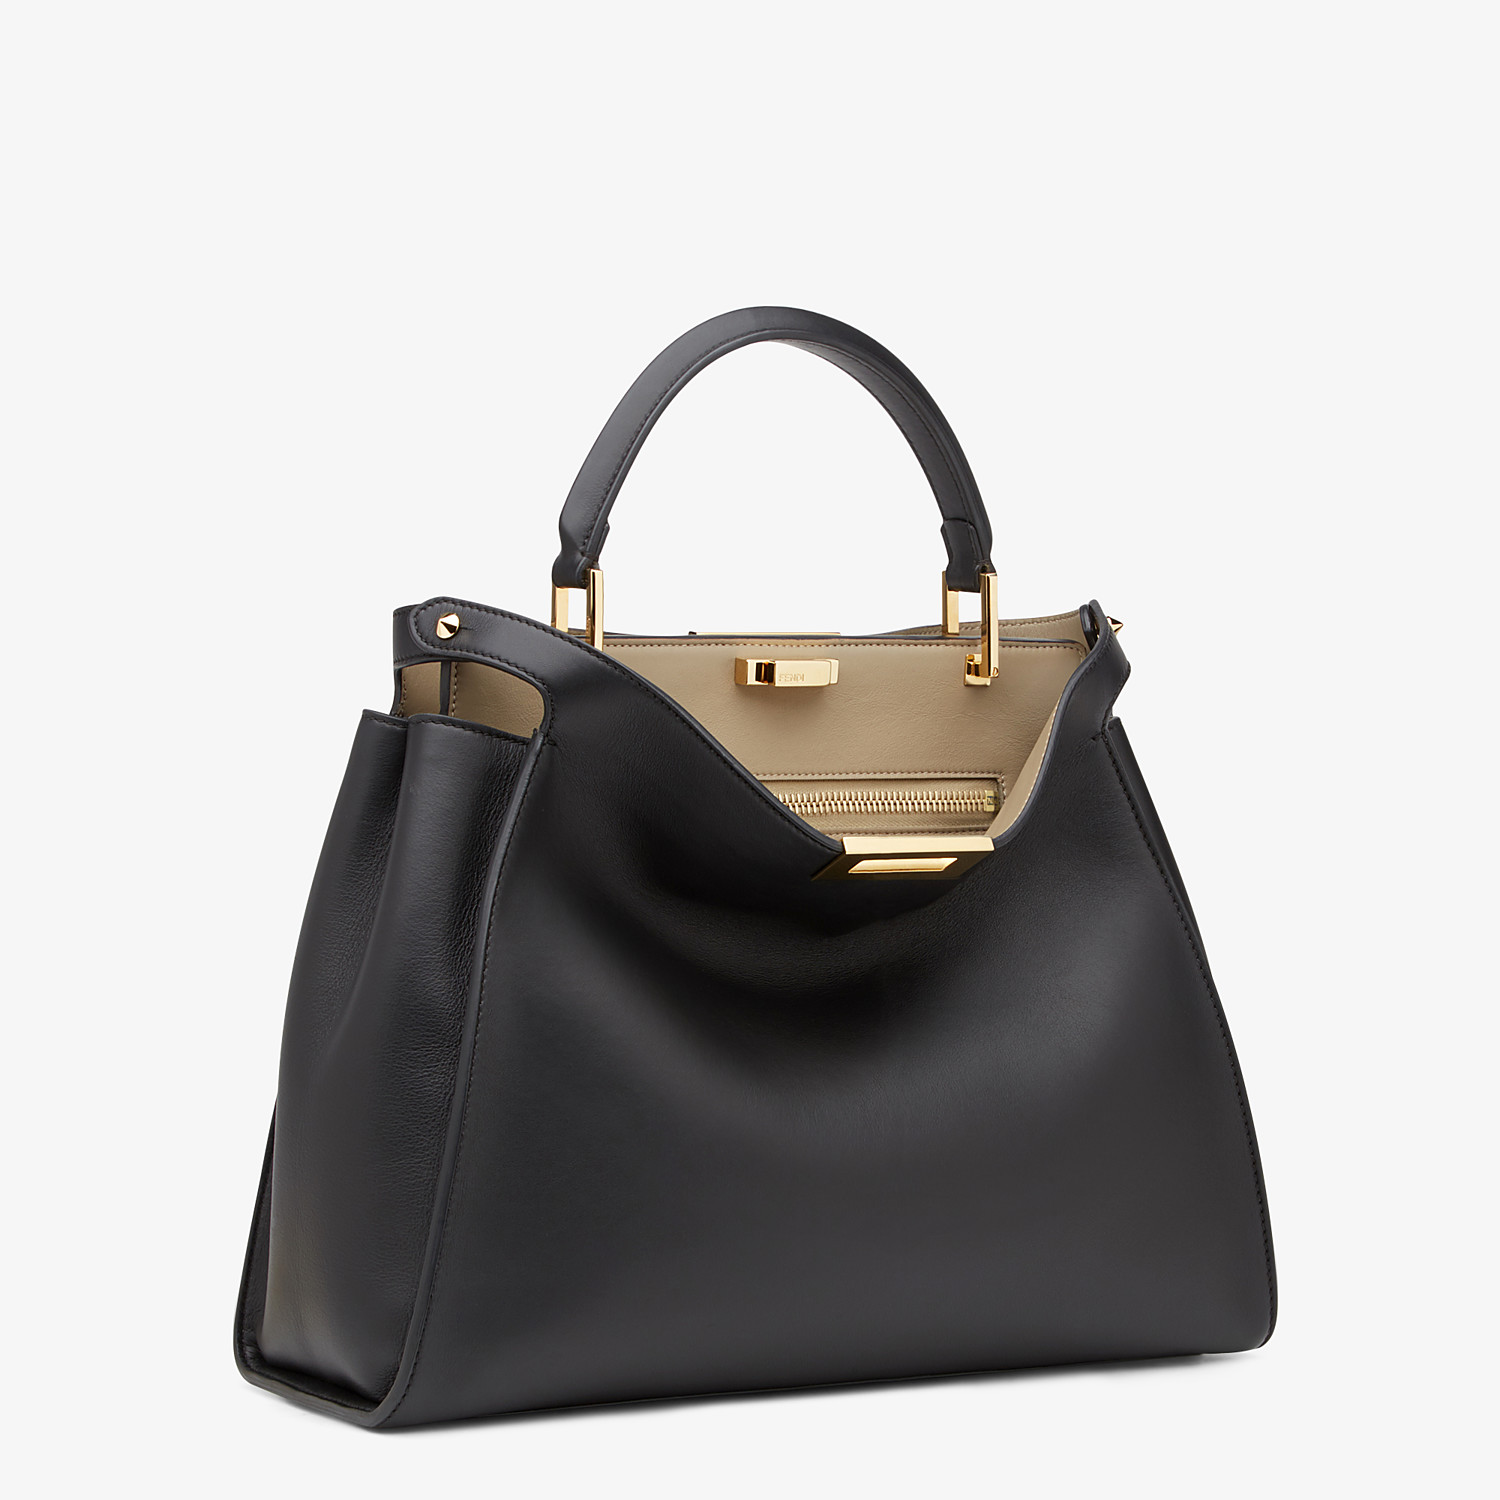 FENDI PEEKABOO ICONIC ESSENTIAL - Black and beige leather handbag - view 2 detail